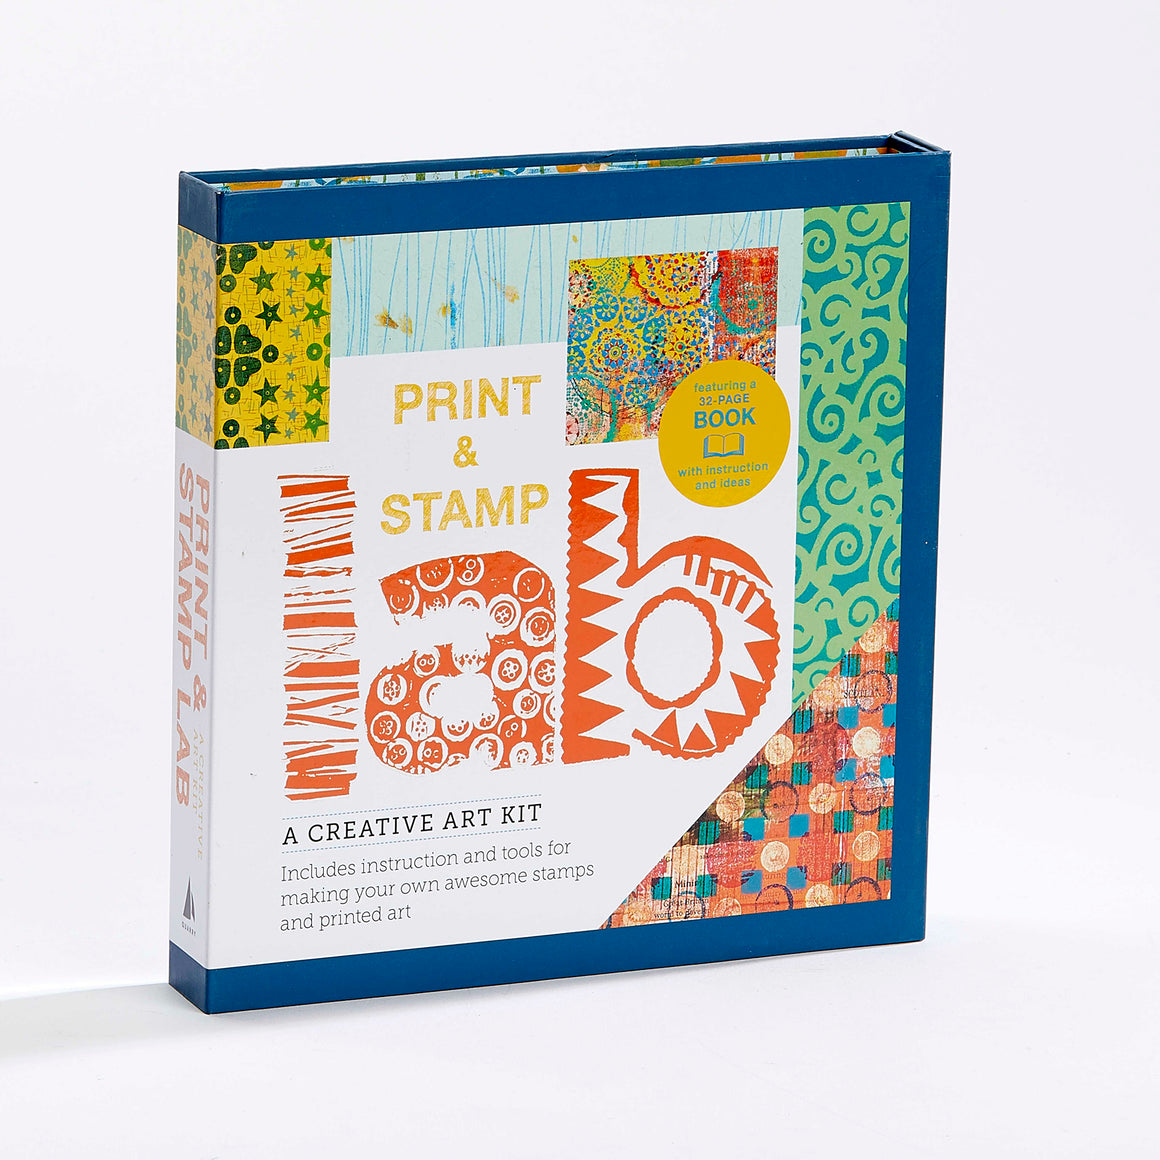 Print and Stamp Lab